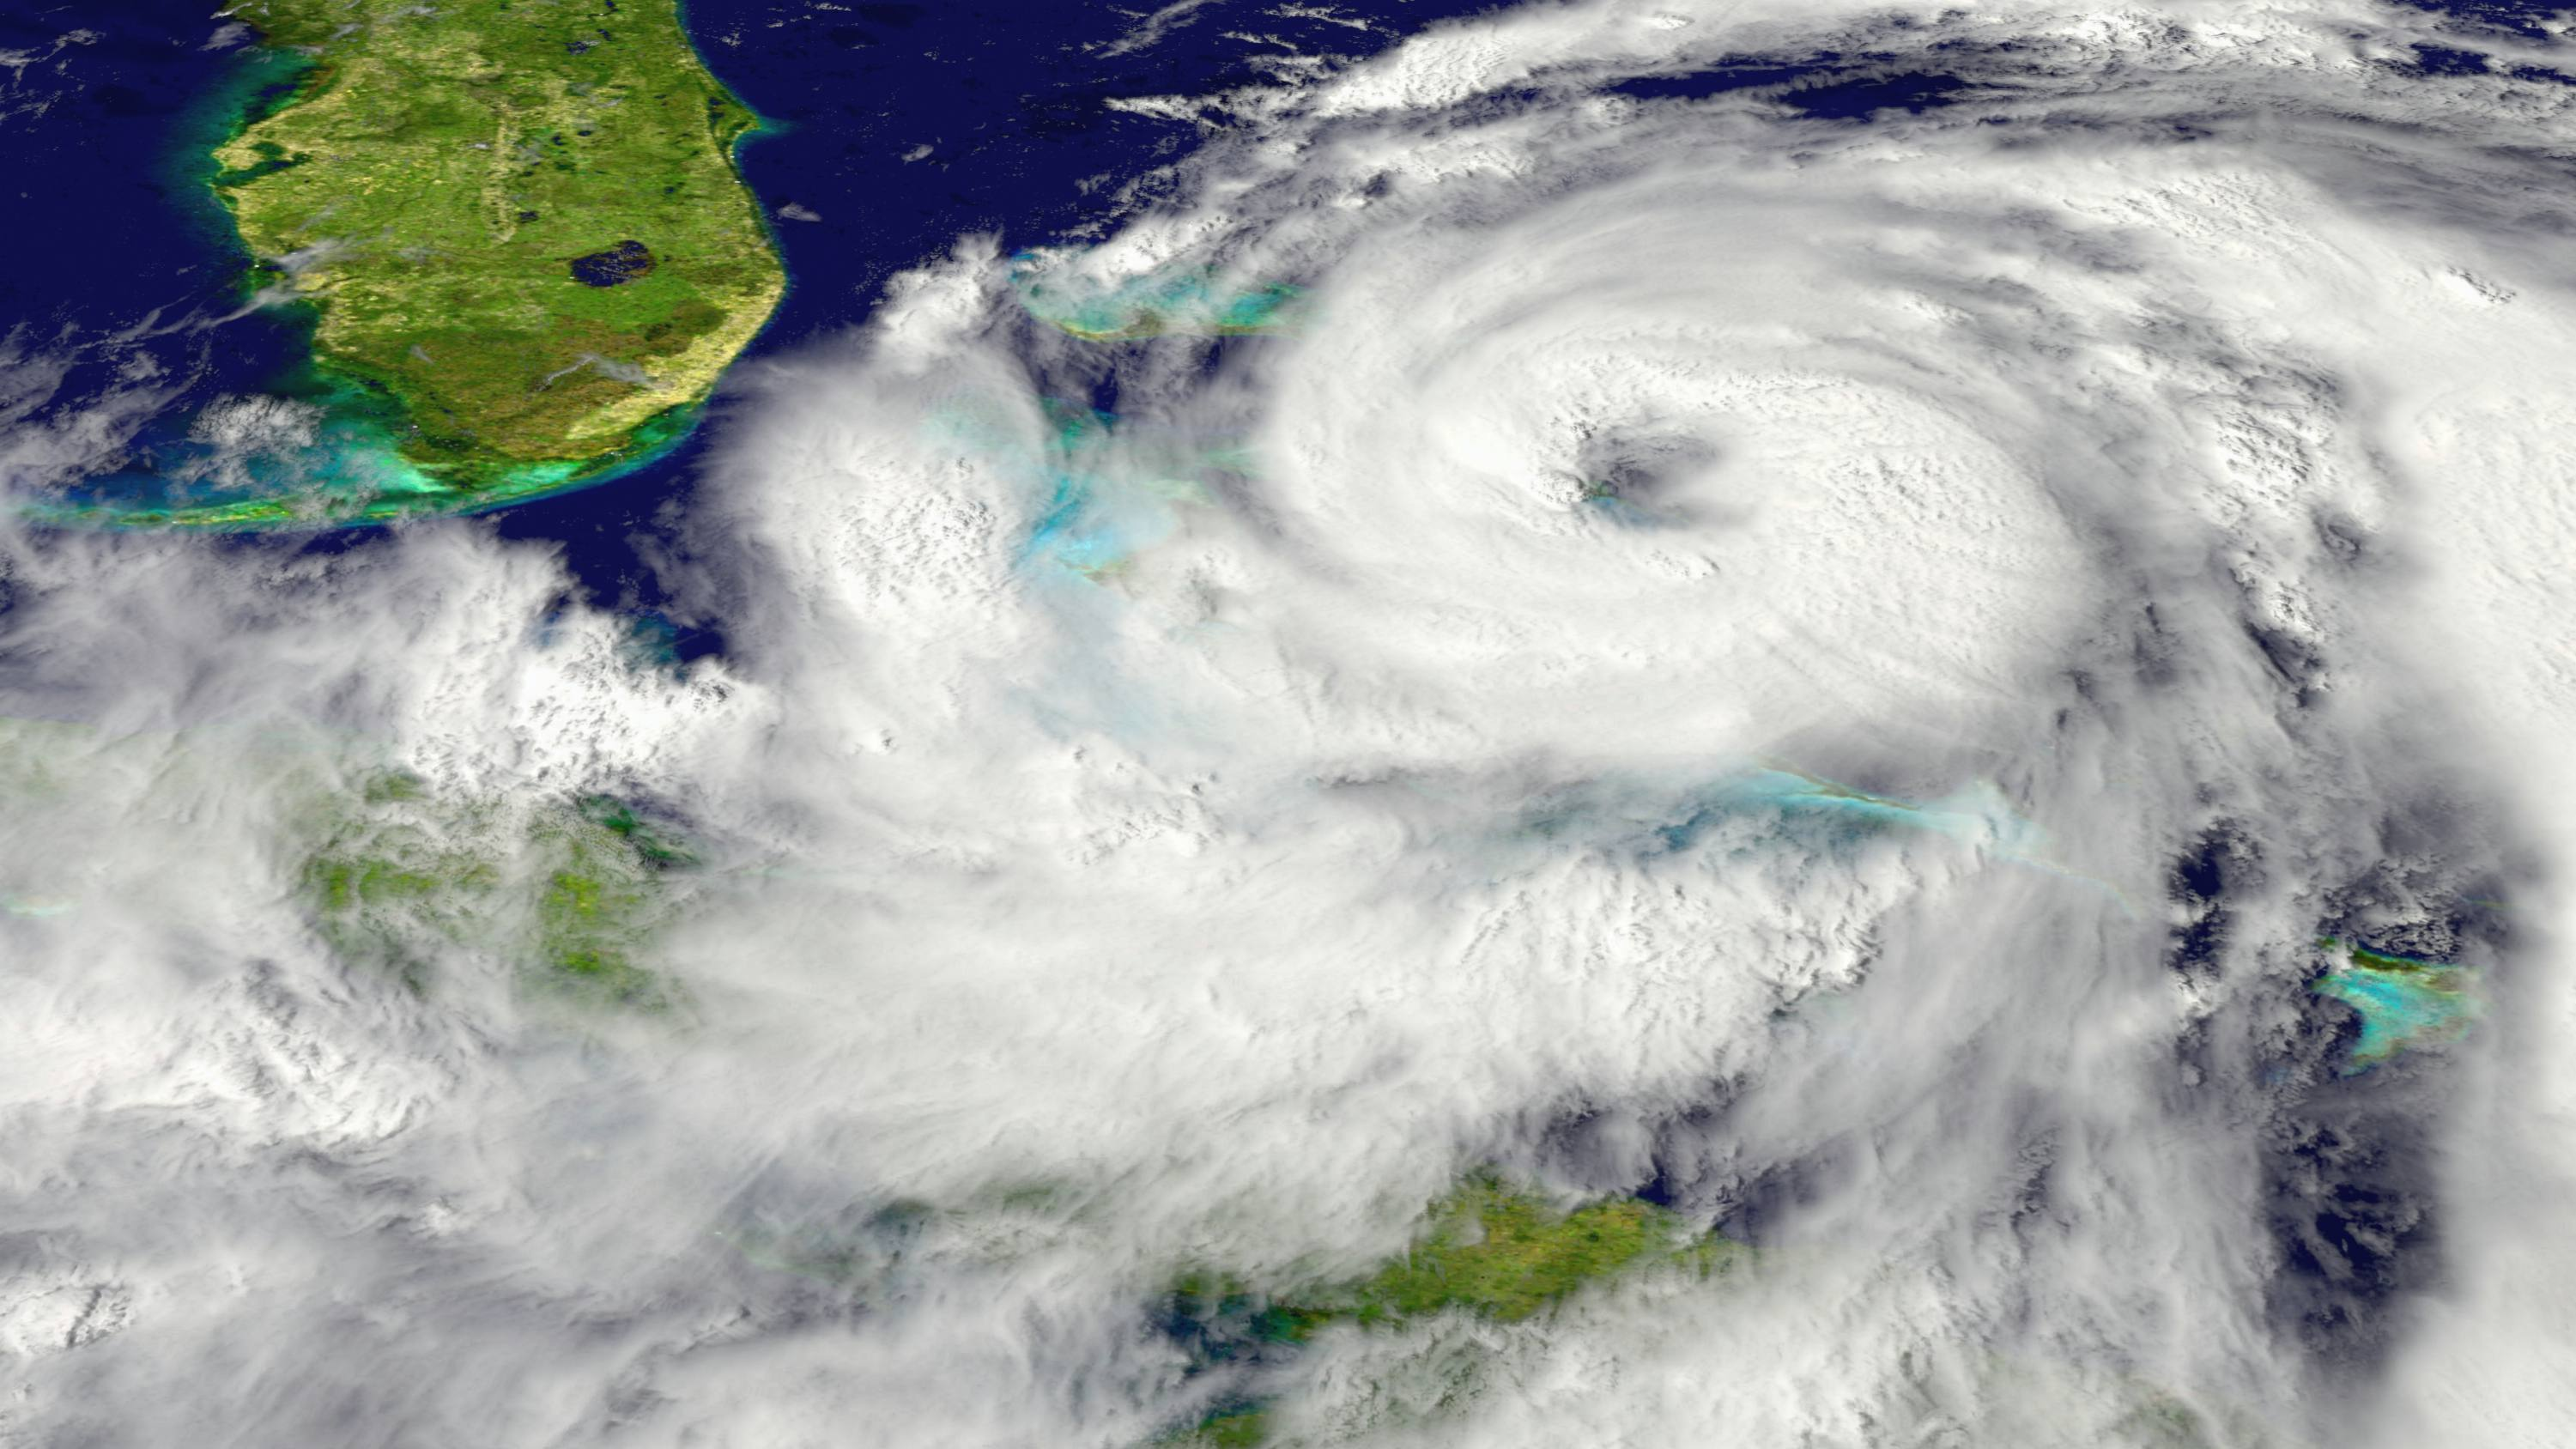 an Atlantic hurricane near Florida from a NASA space satellite